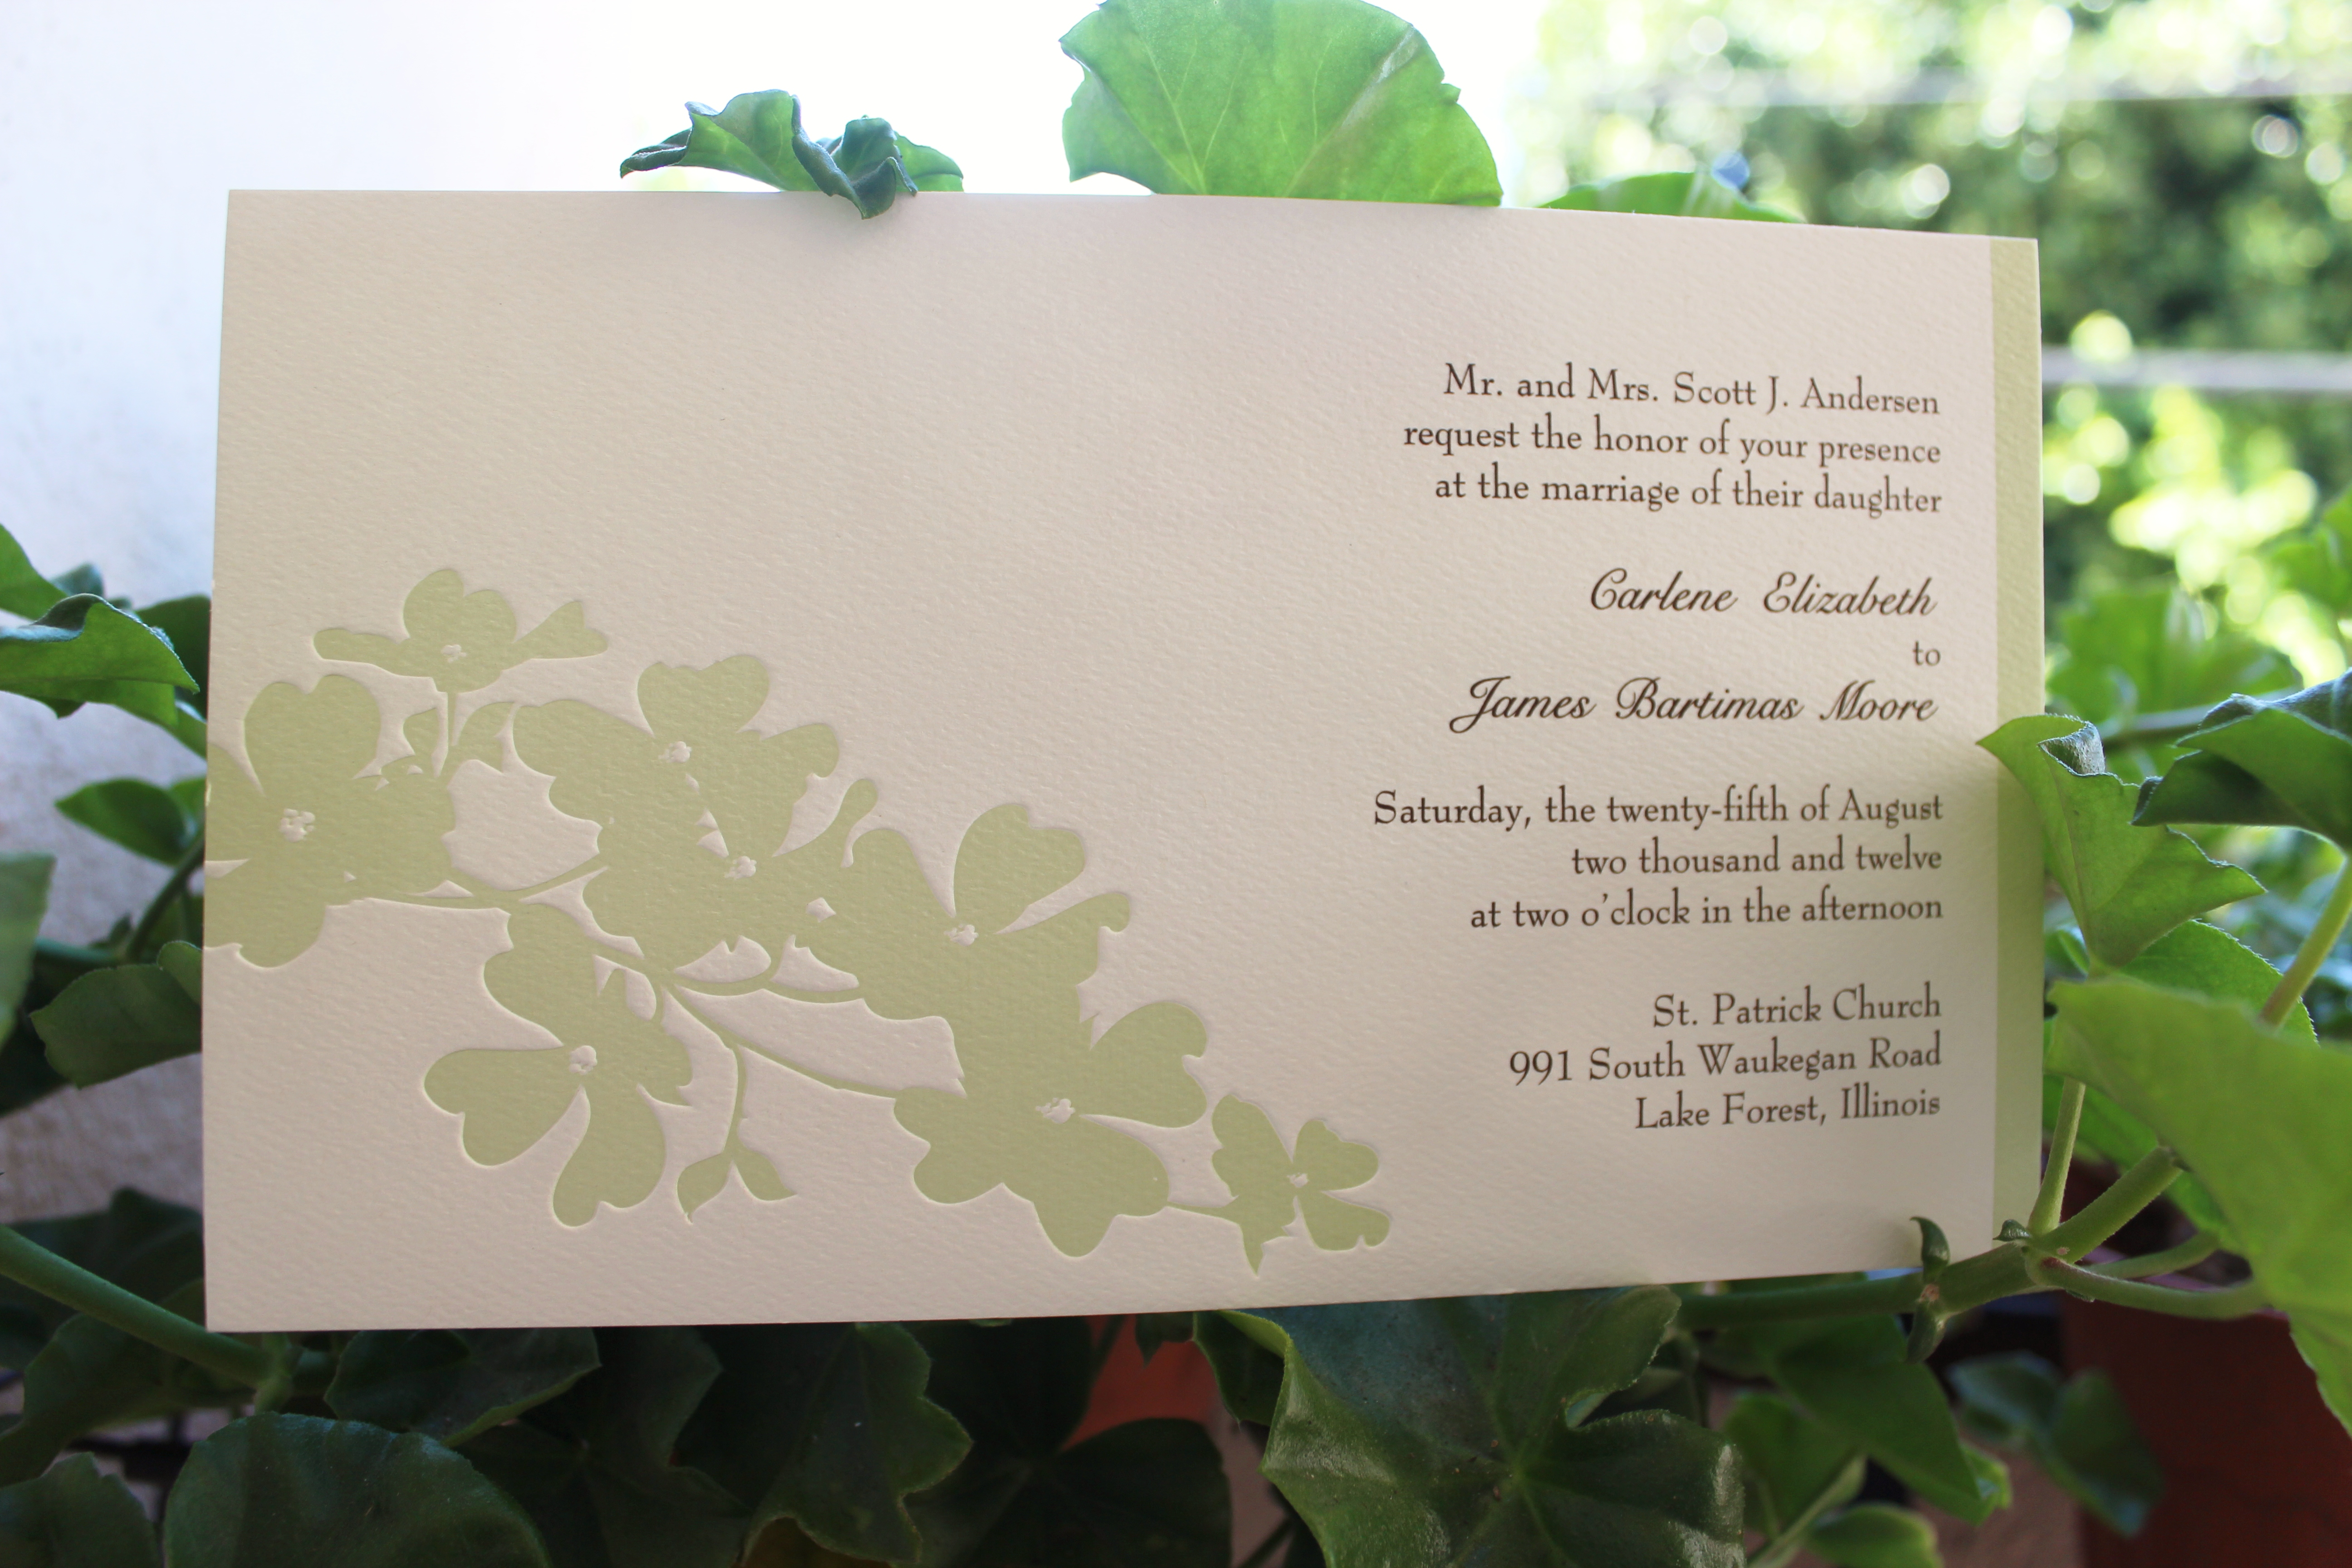 Garden Wedding Invitations: Eco-Friendly Garden Wedding Invitations